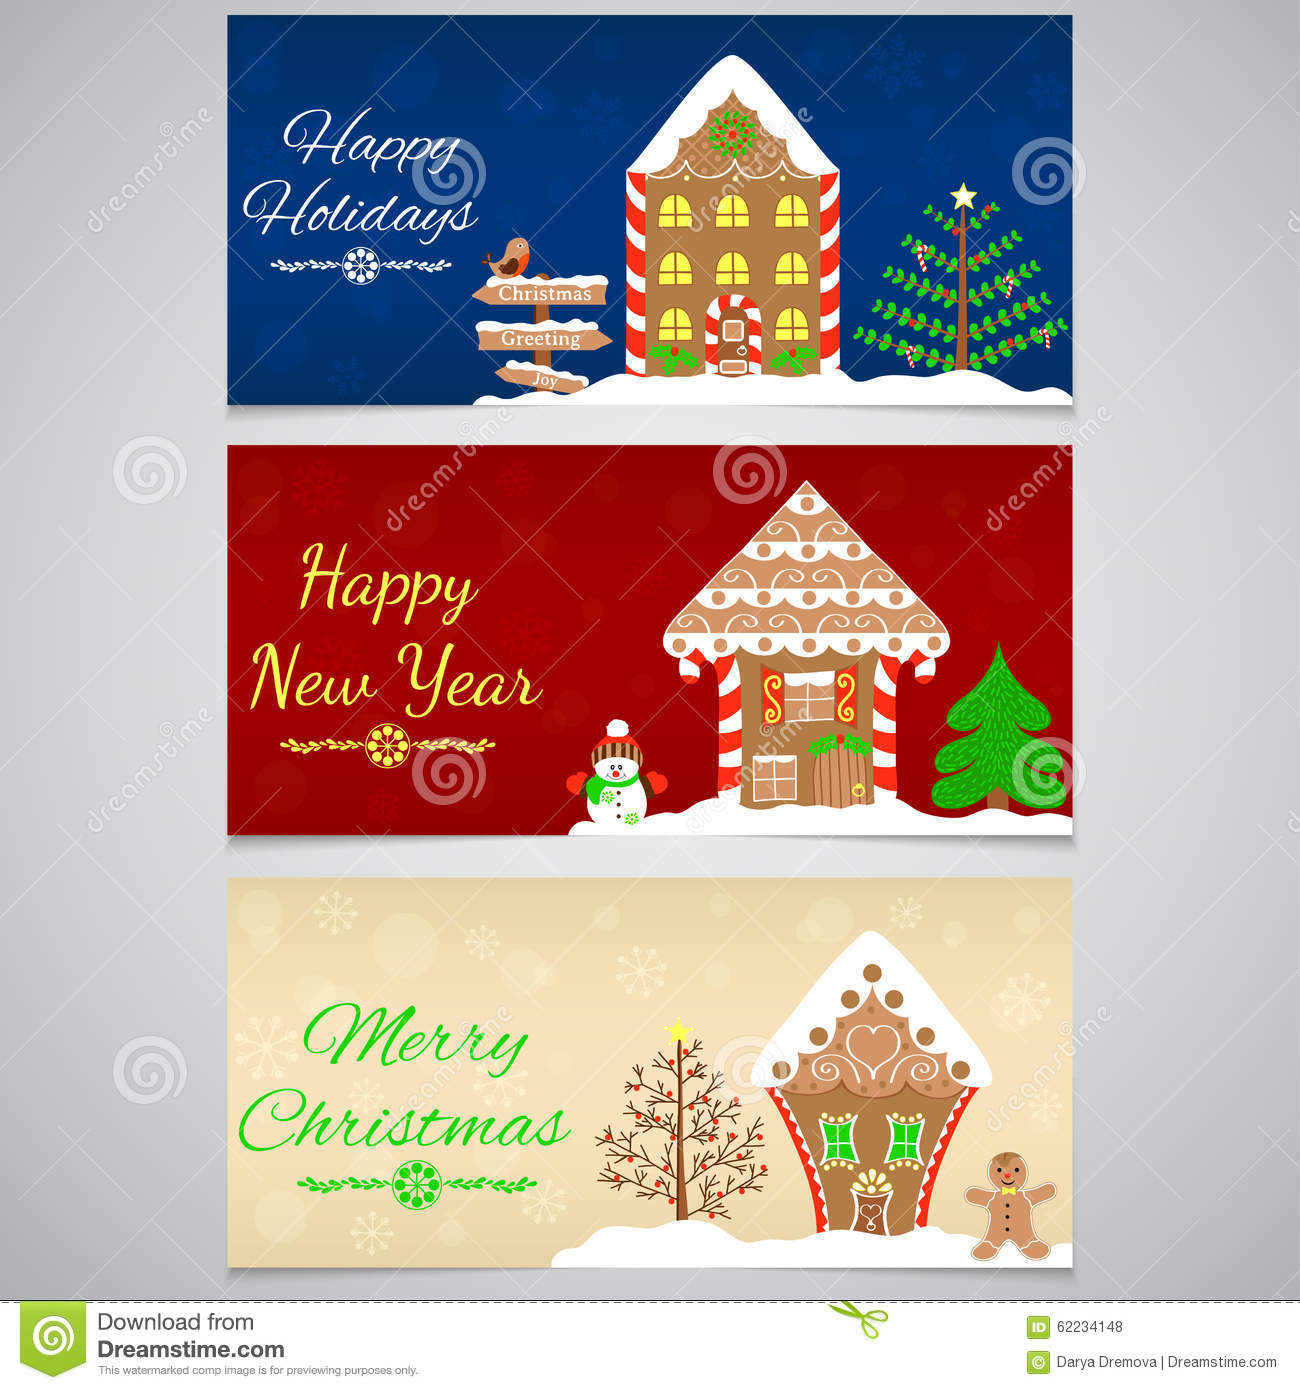 3 New Year, Christmas Banner With Gingerbread House, Tree